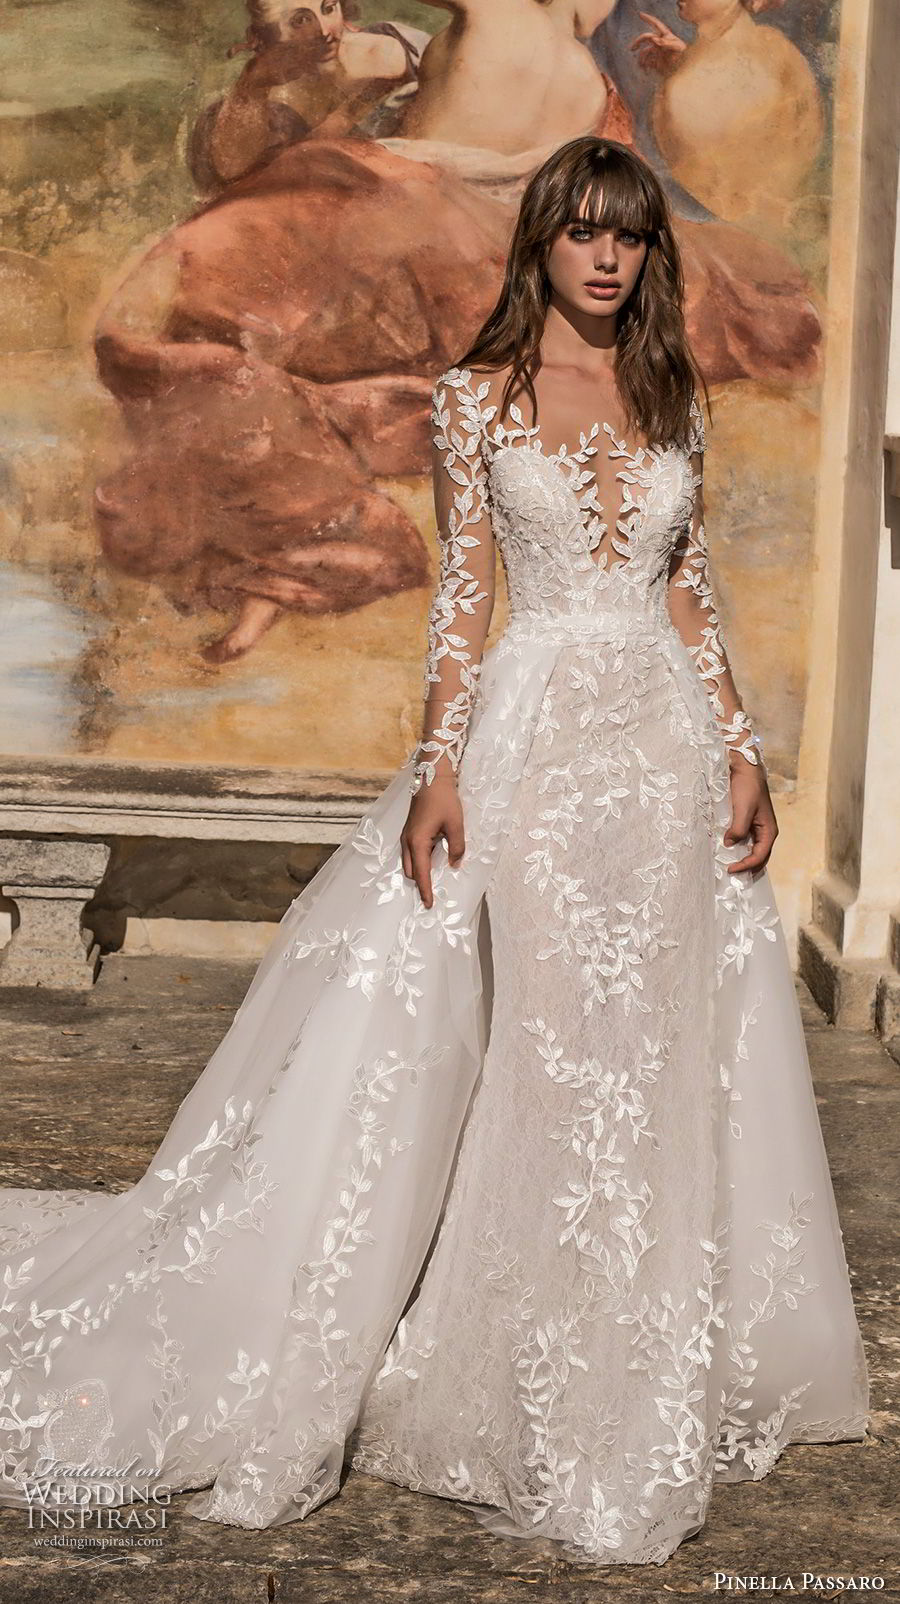 pinella passaro 2018 bridal long sleeves deep plunging sweetheart neck full embellishment princess romantic fit and flare wedding dress a line overskirt long train (15) mv